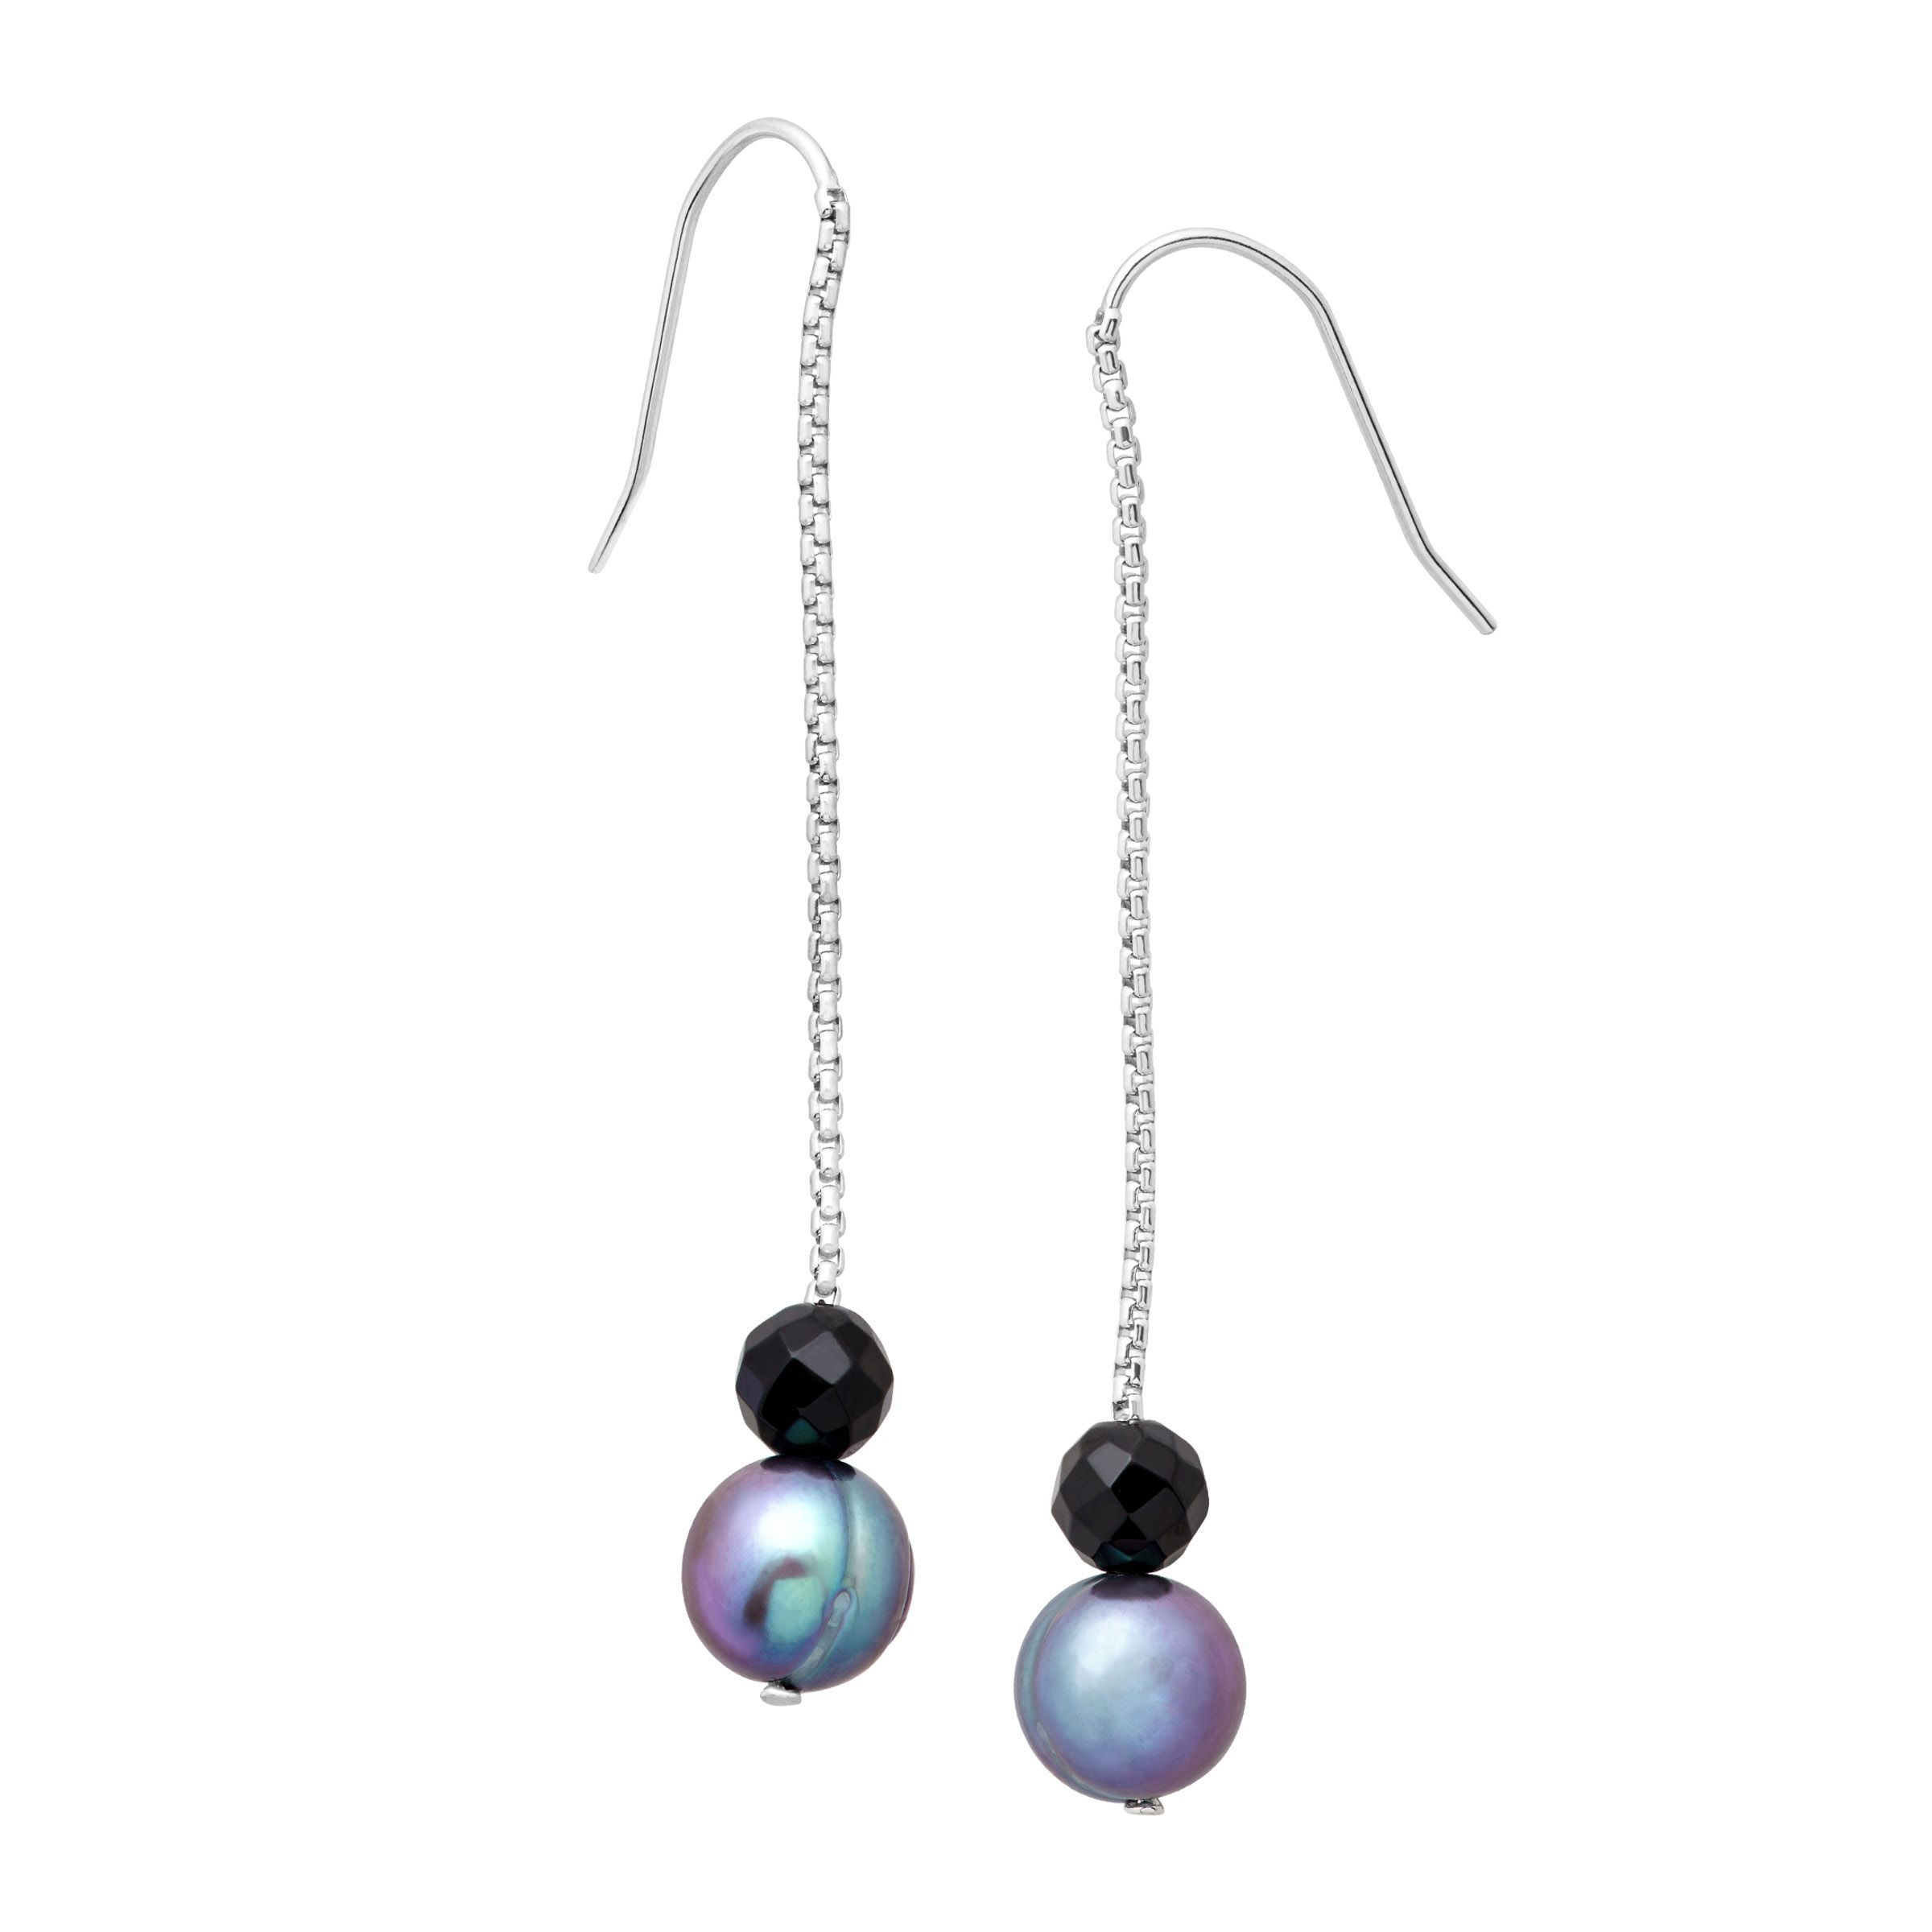 e2f1c3a5b Honora Blue Freshwater Ringed Pearl & Onyx Bead Drop Earrings in Sterling  Silver